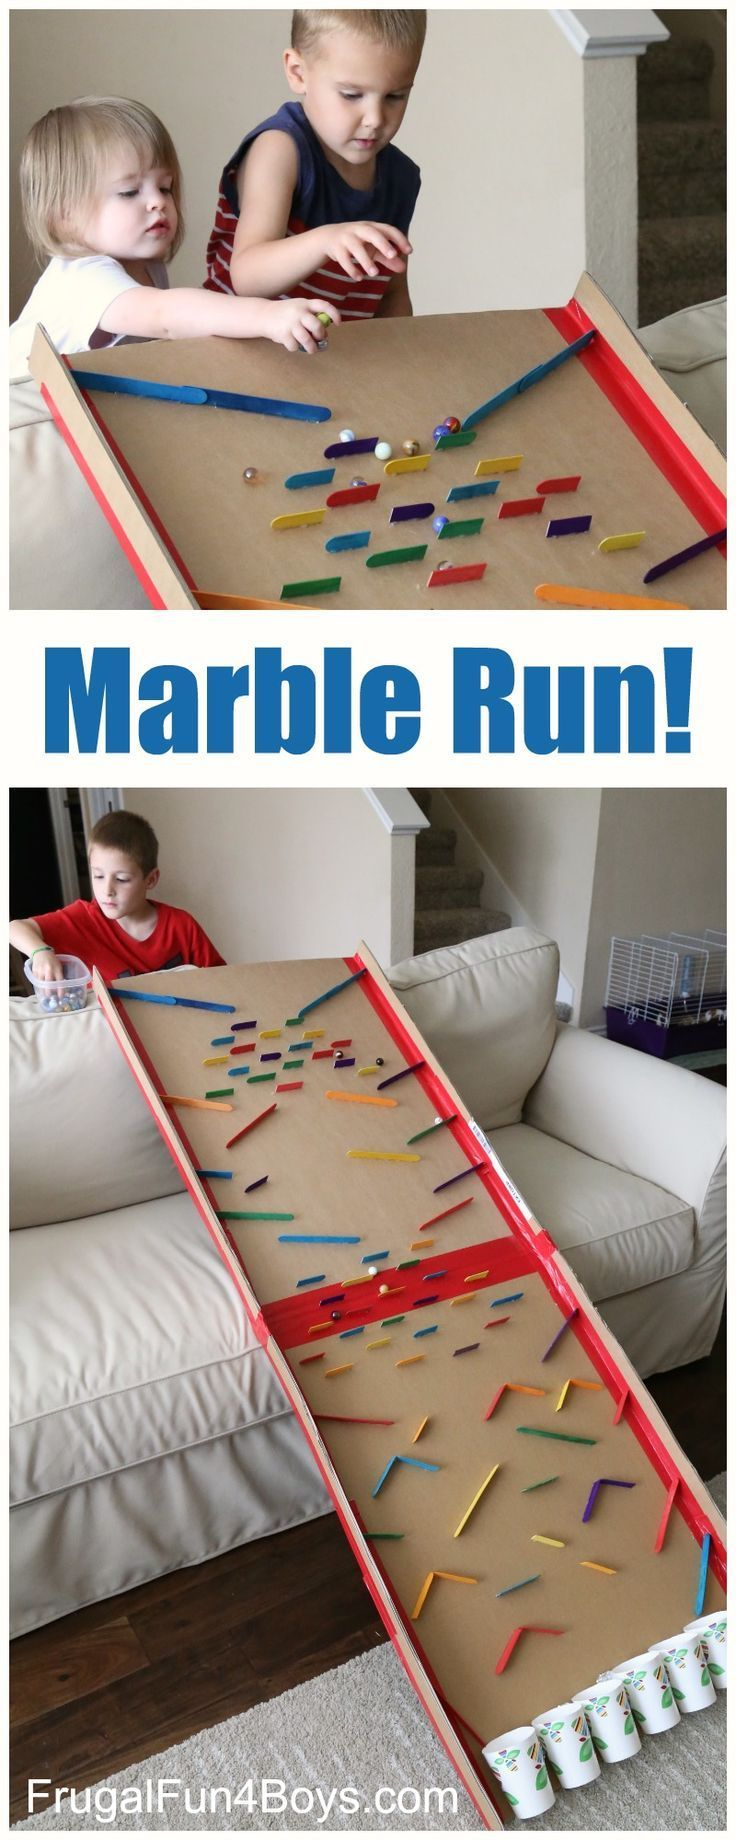 Turn a Cardboard Box into an Epic Marble Run - Great engineering challenge for…